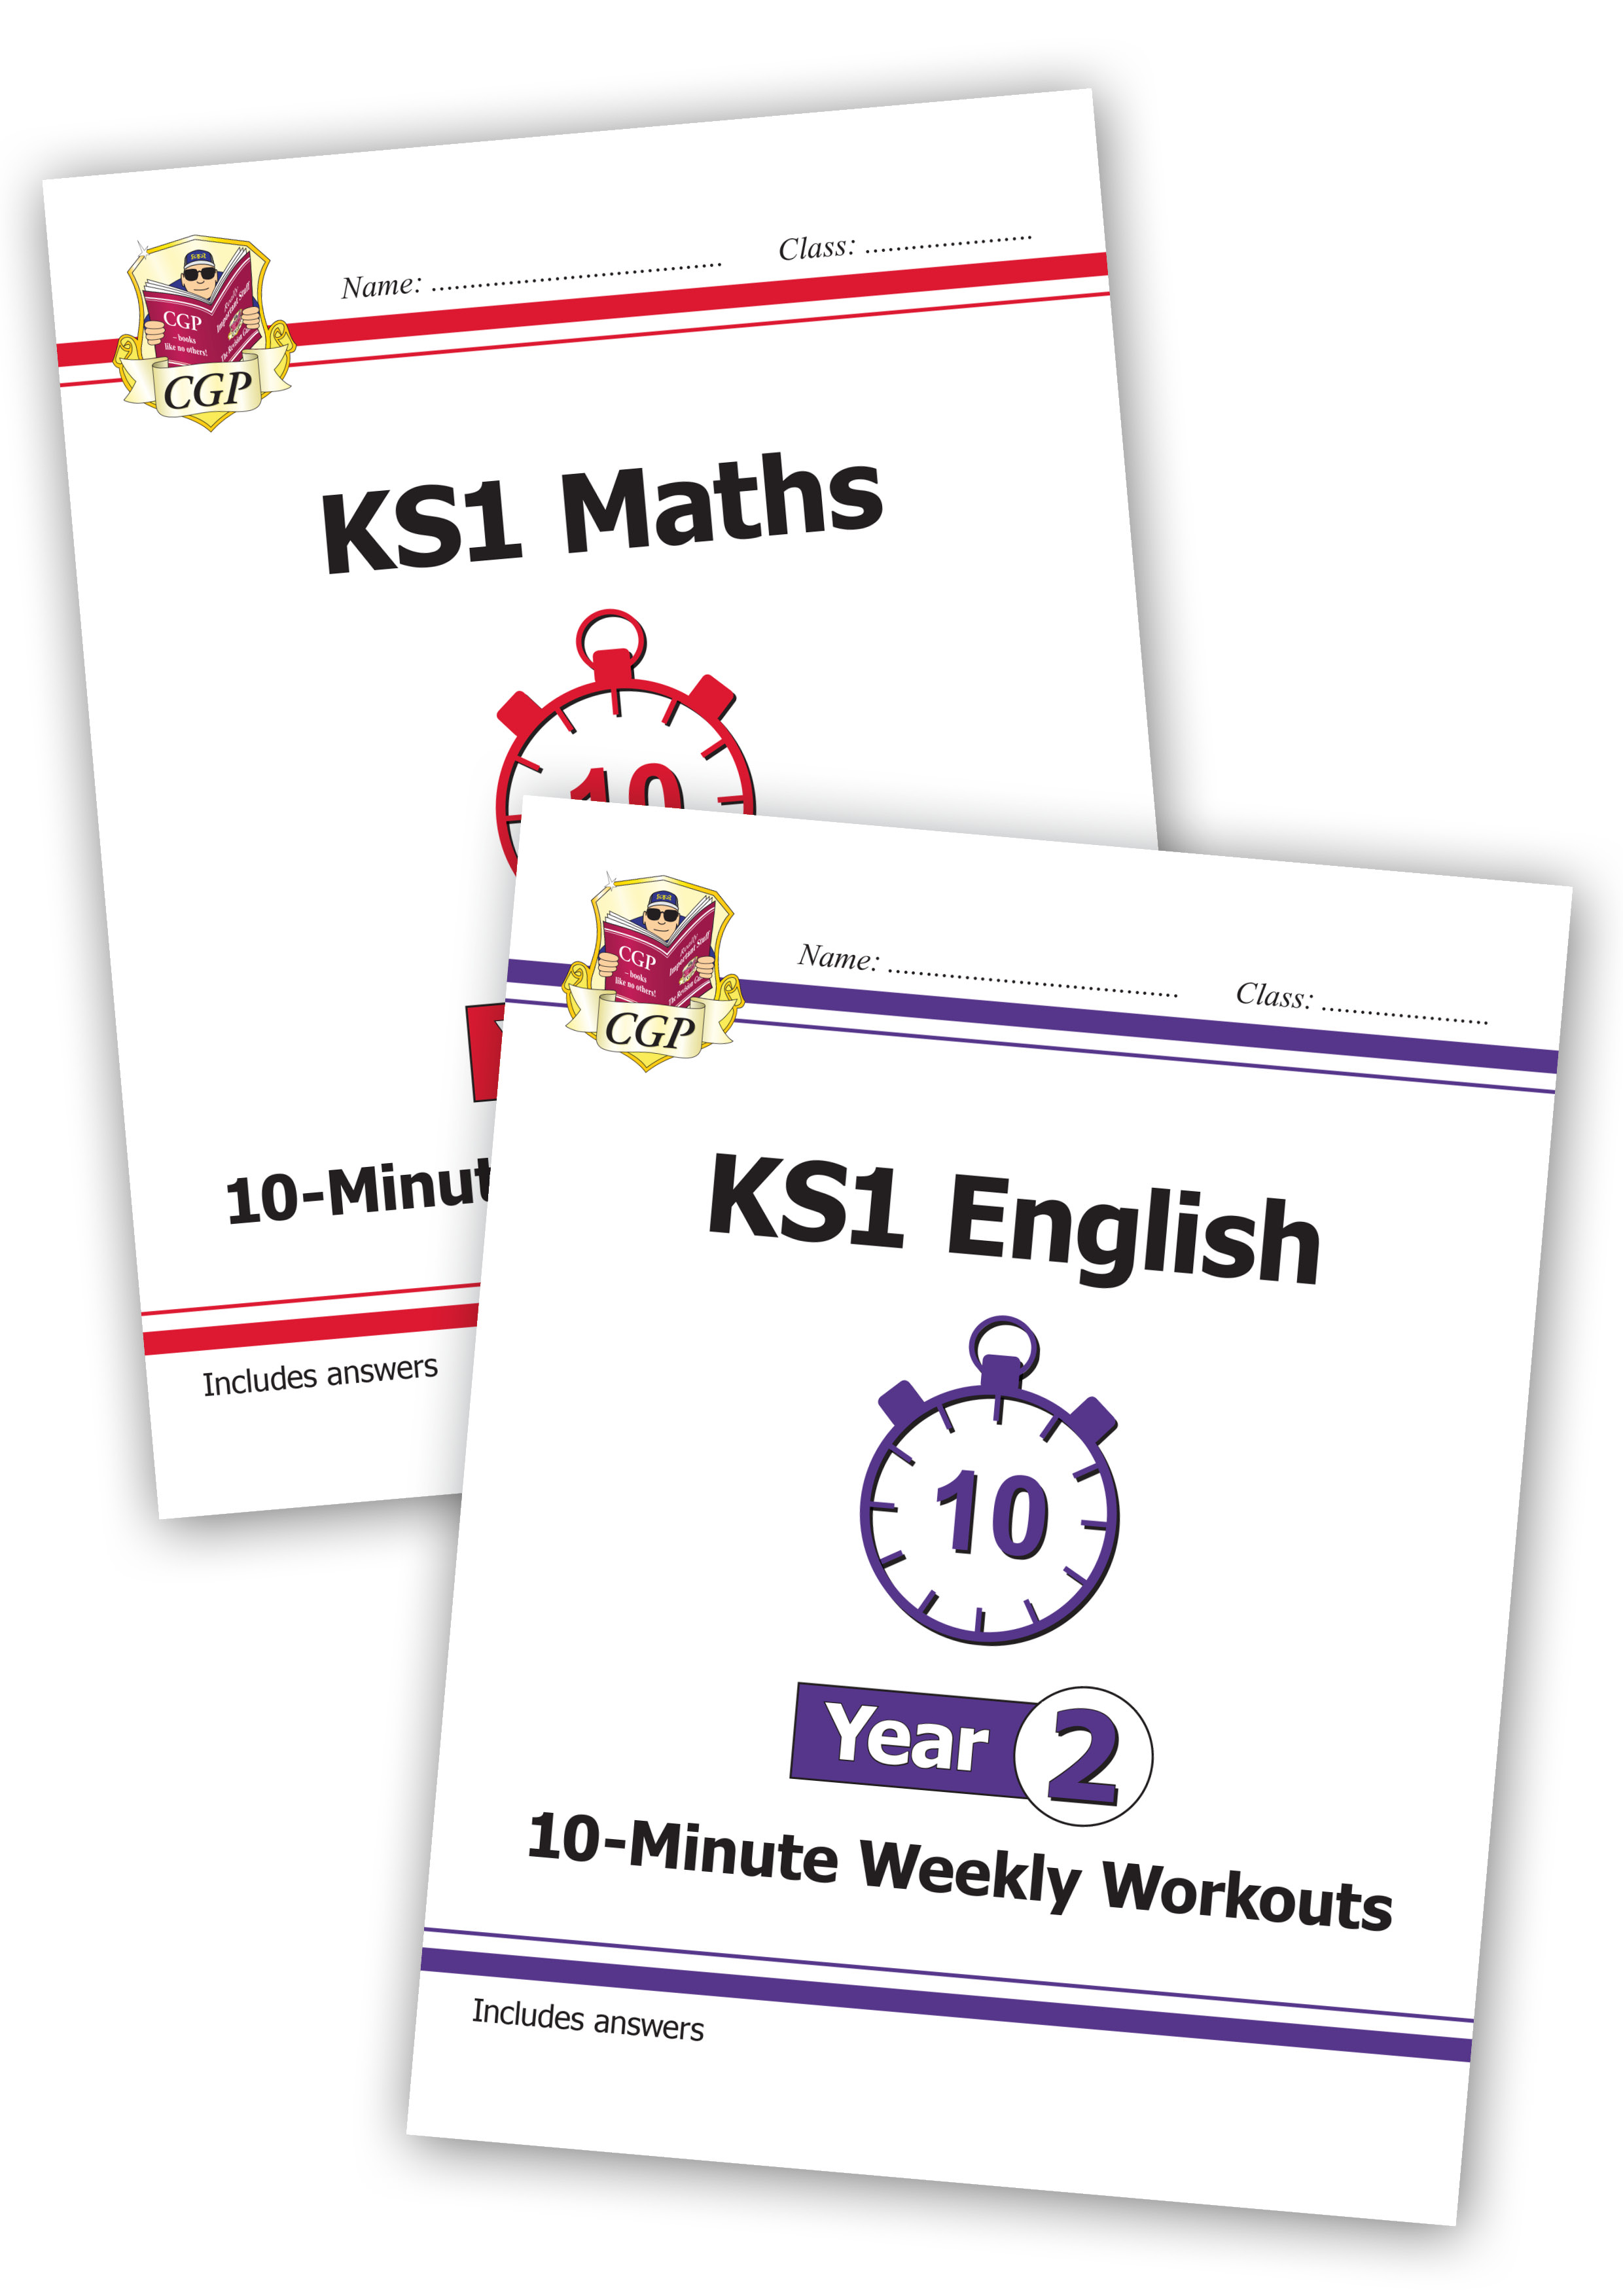 EM2XWB11 - New KS2 Maths and English 10-Minute Weekly Workouts Bundle - Year 2